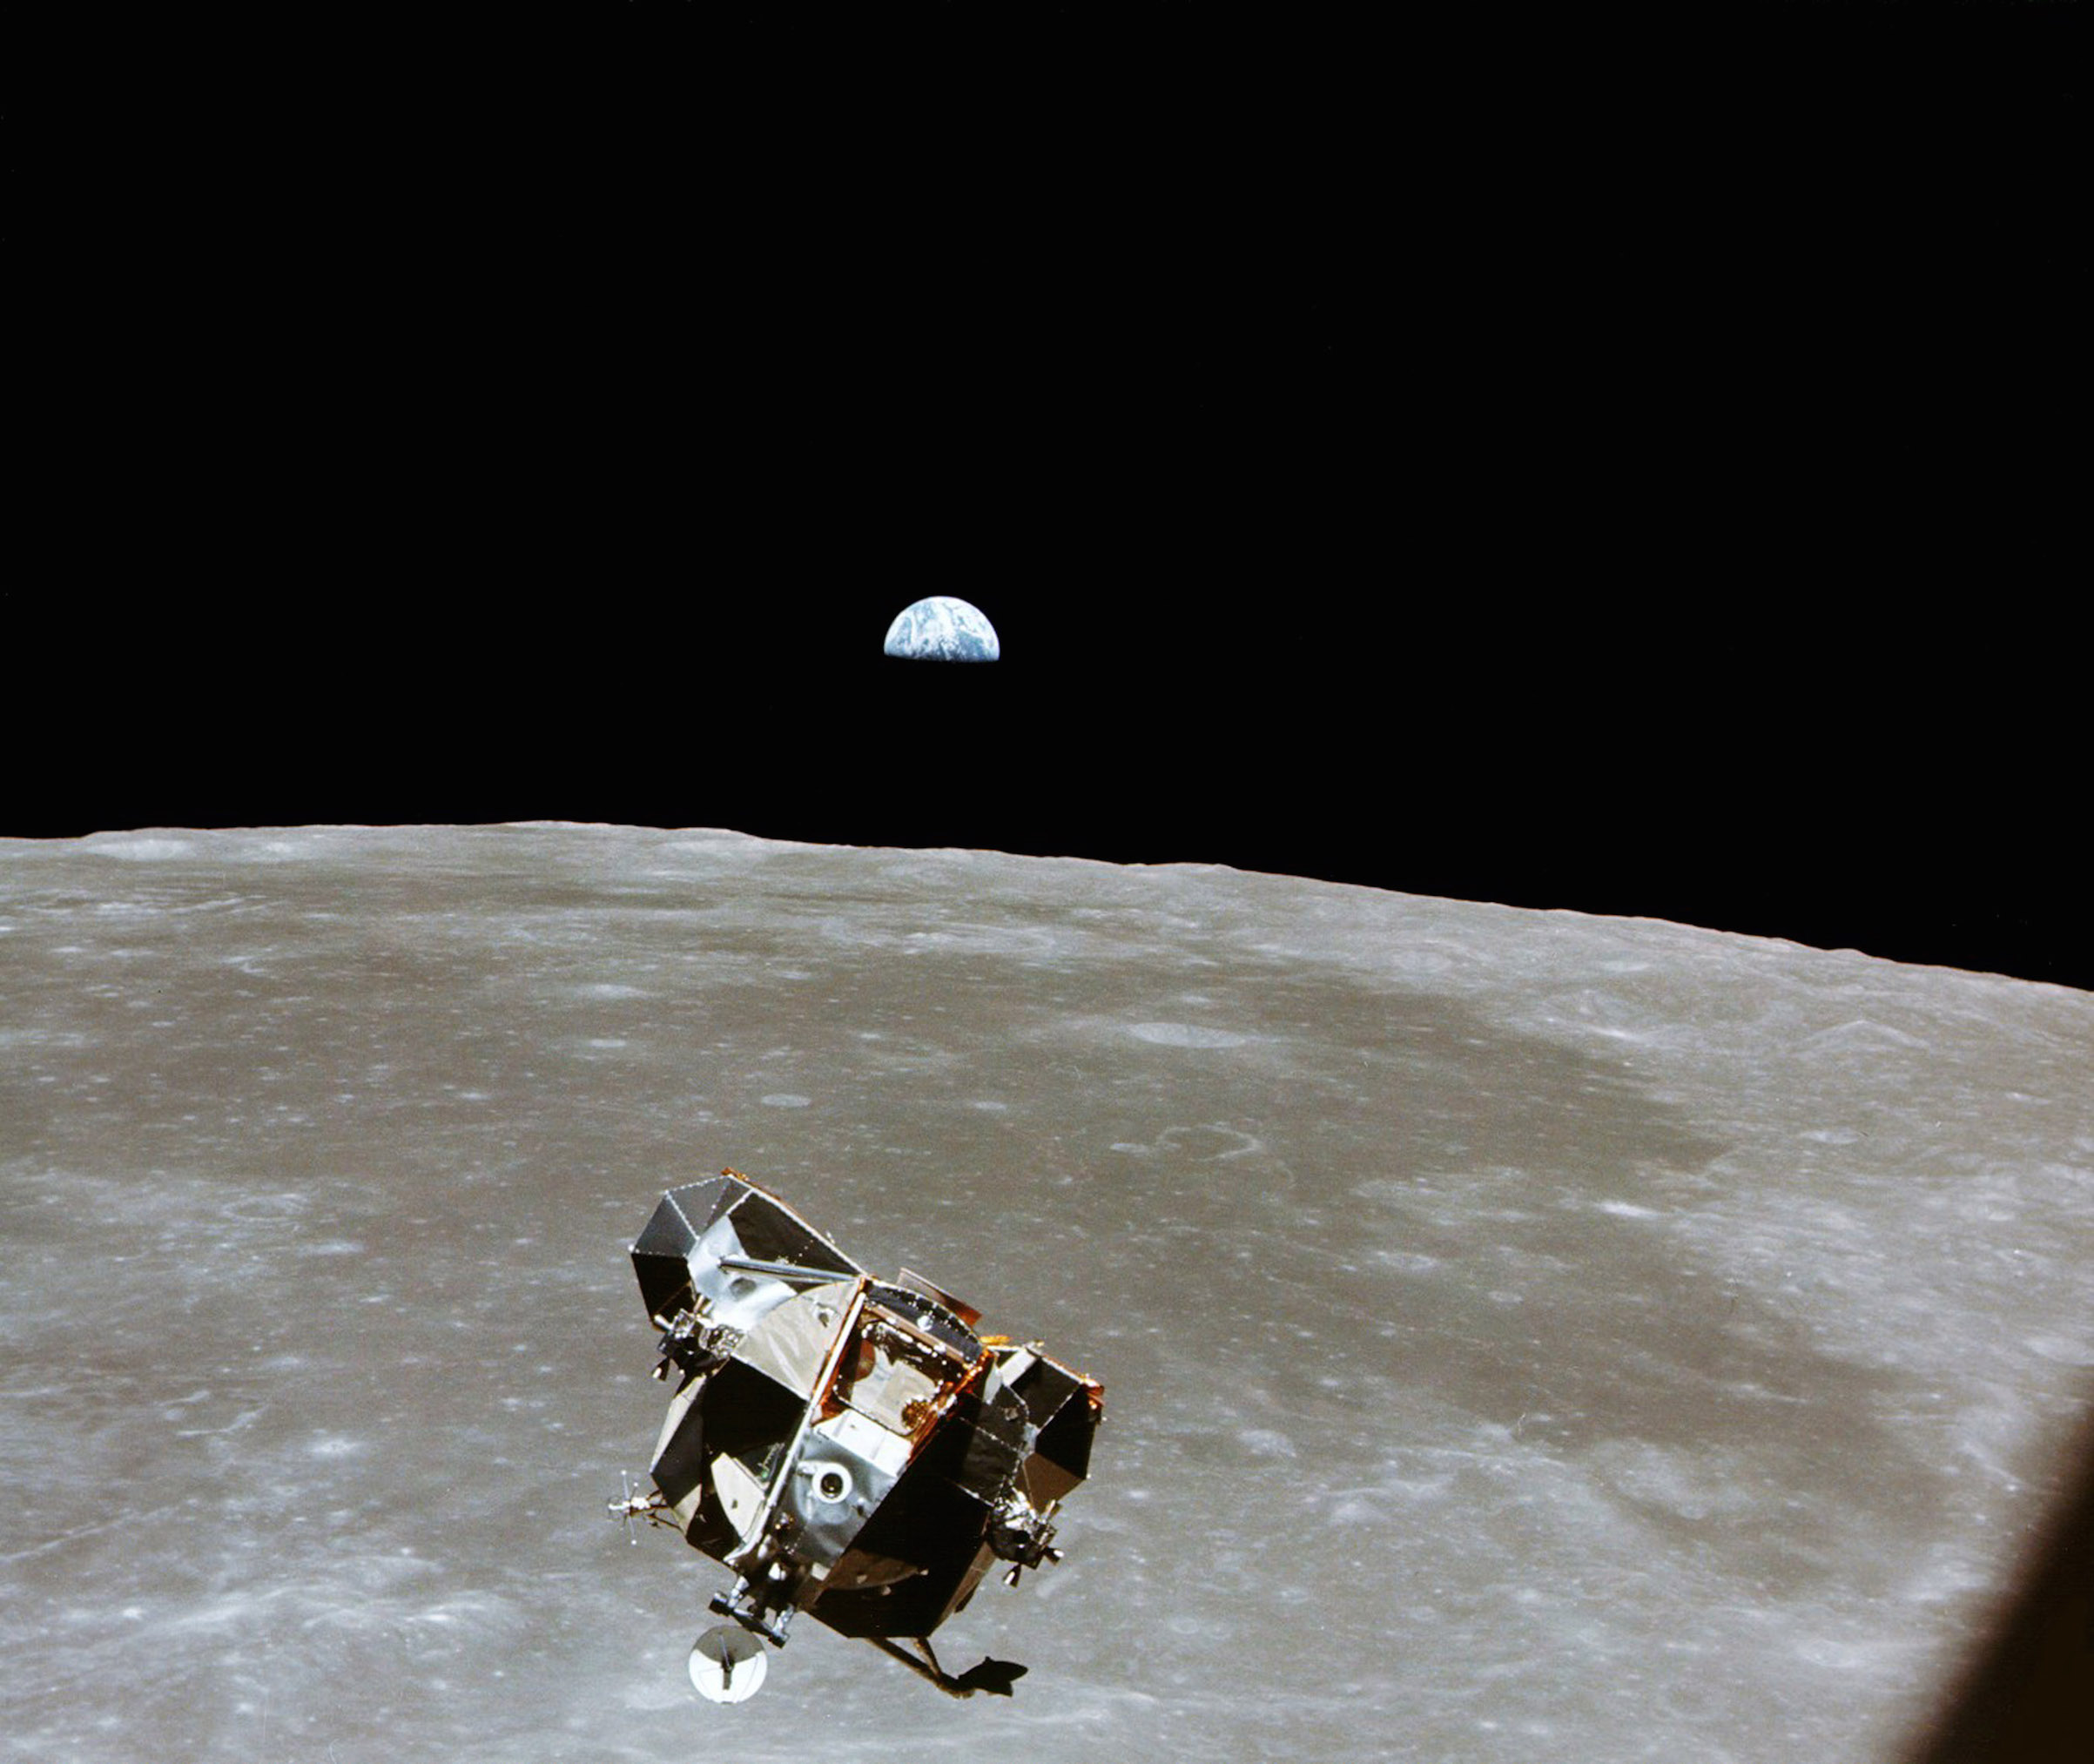 With a half-Earth in the background, the Lunar Module ascent stage with Astronauts Neil Armstrong and Edwin Aldrin Jr. approaches for a rendezvous with the Apollo Command Module manned by Michael Collins, during the Apollo 11 mission in 1969.